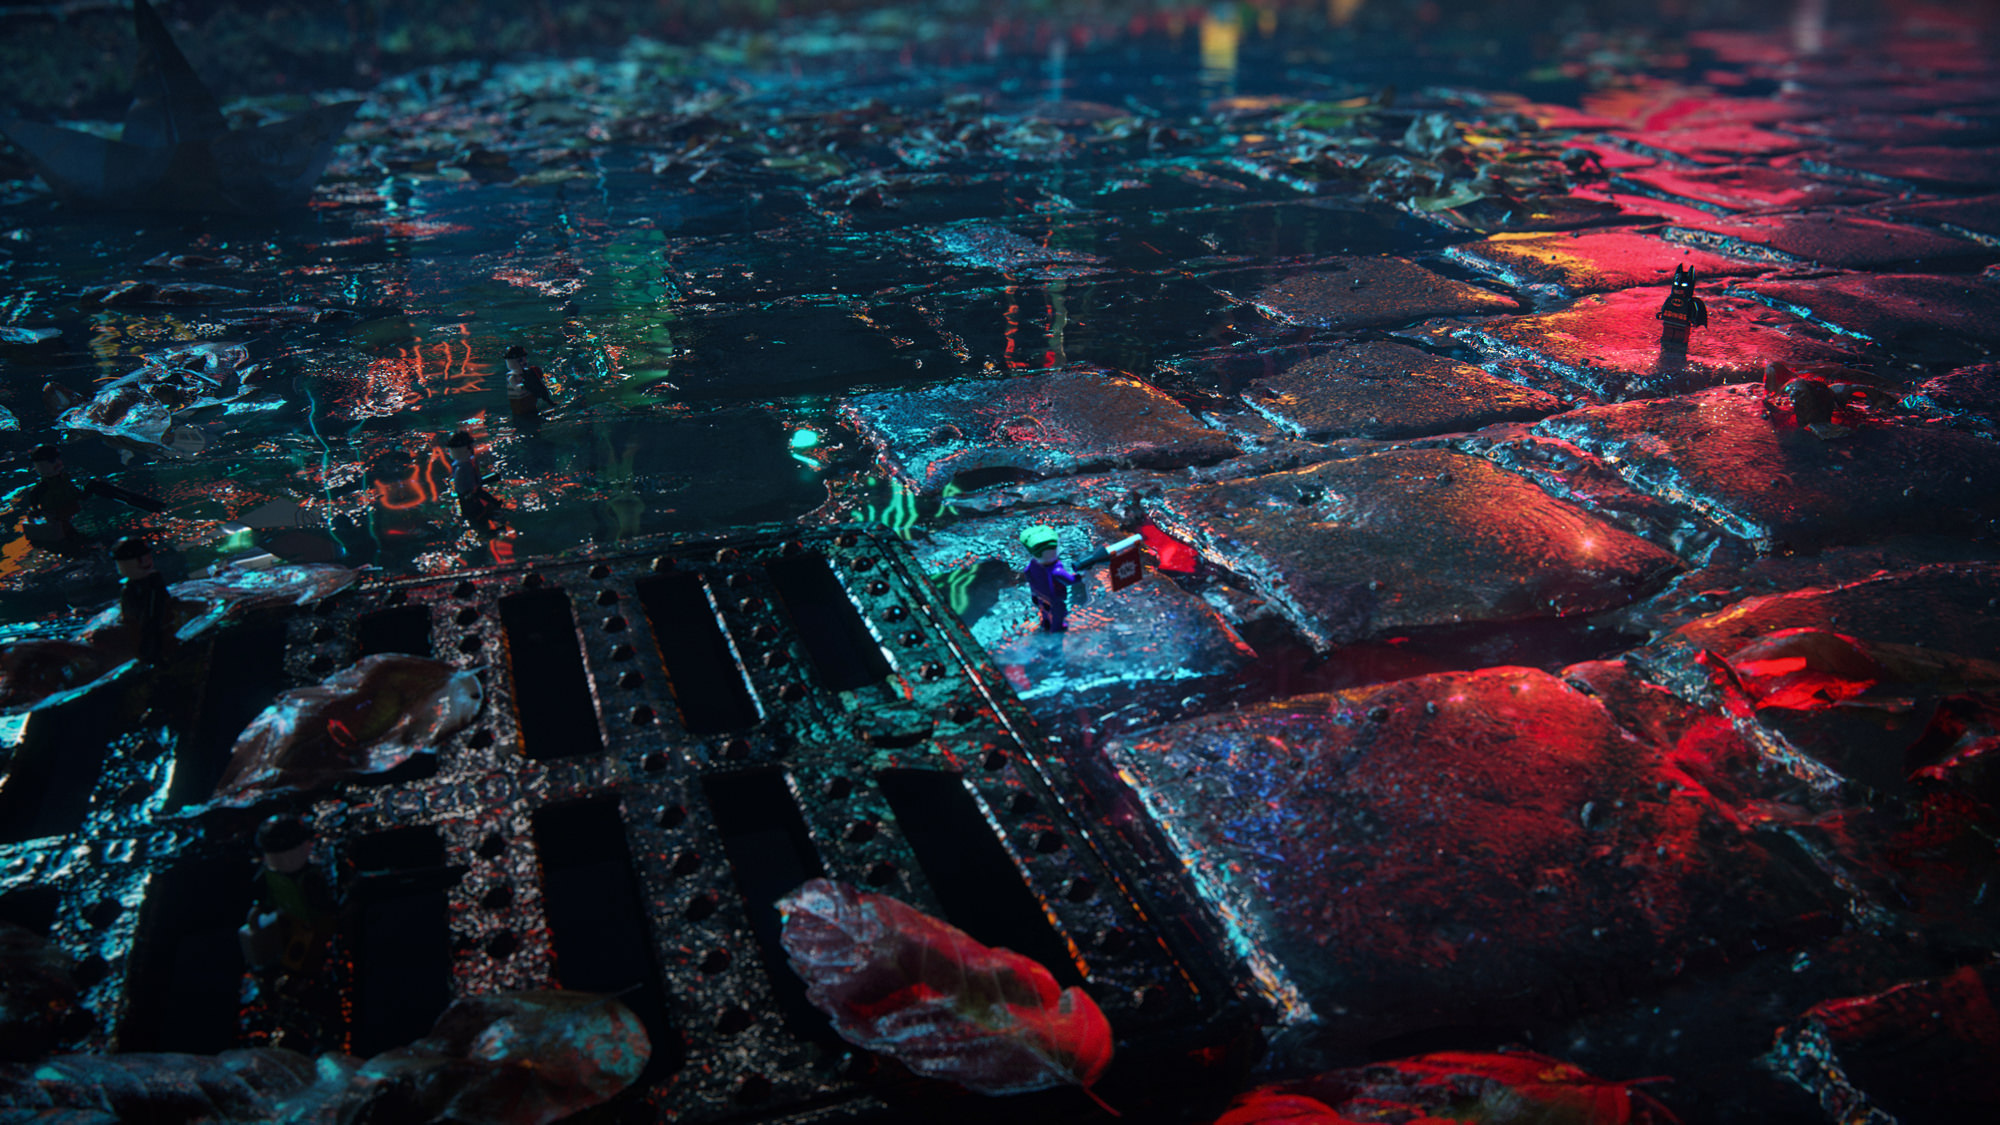 Night city 3D toy rendering with Batman and Joker visualized as mini LEGO action figures, reflecting in the wet paving next to the sewage